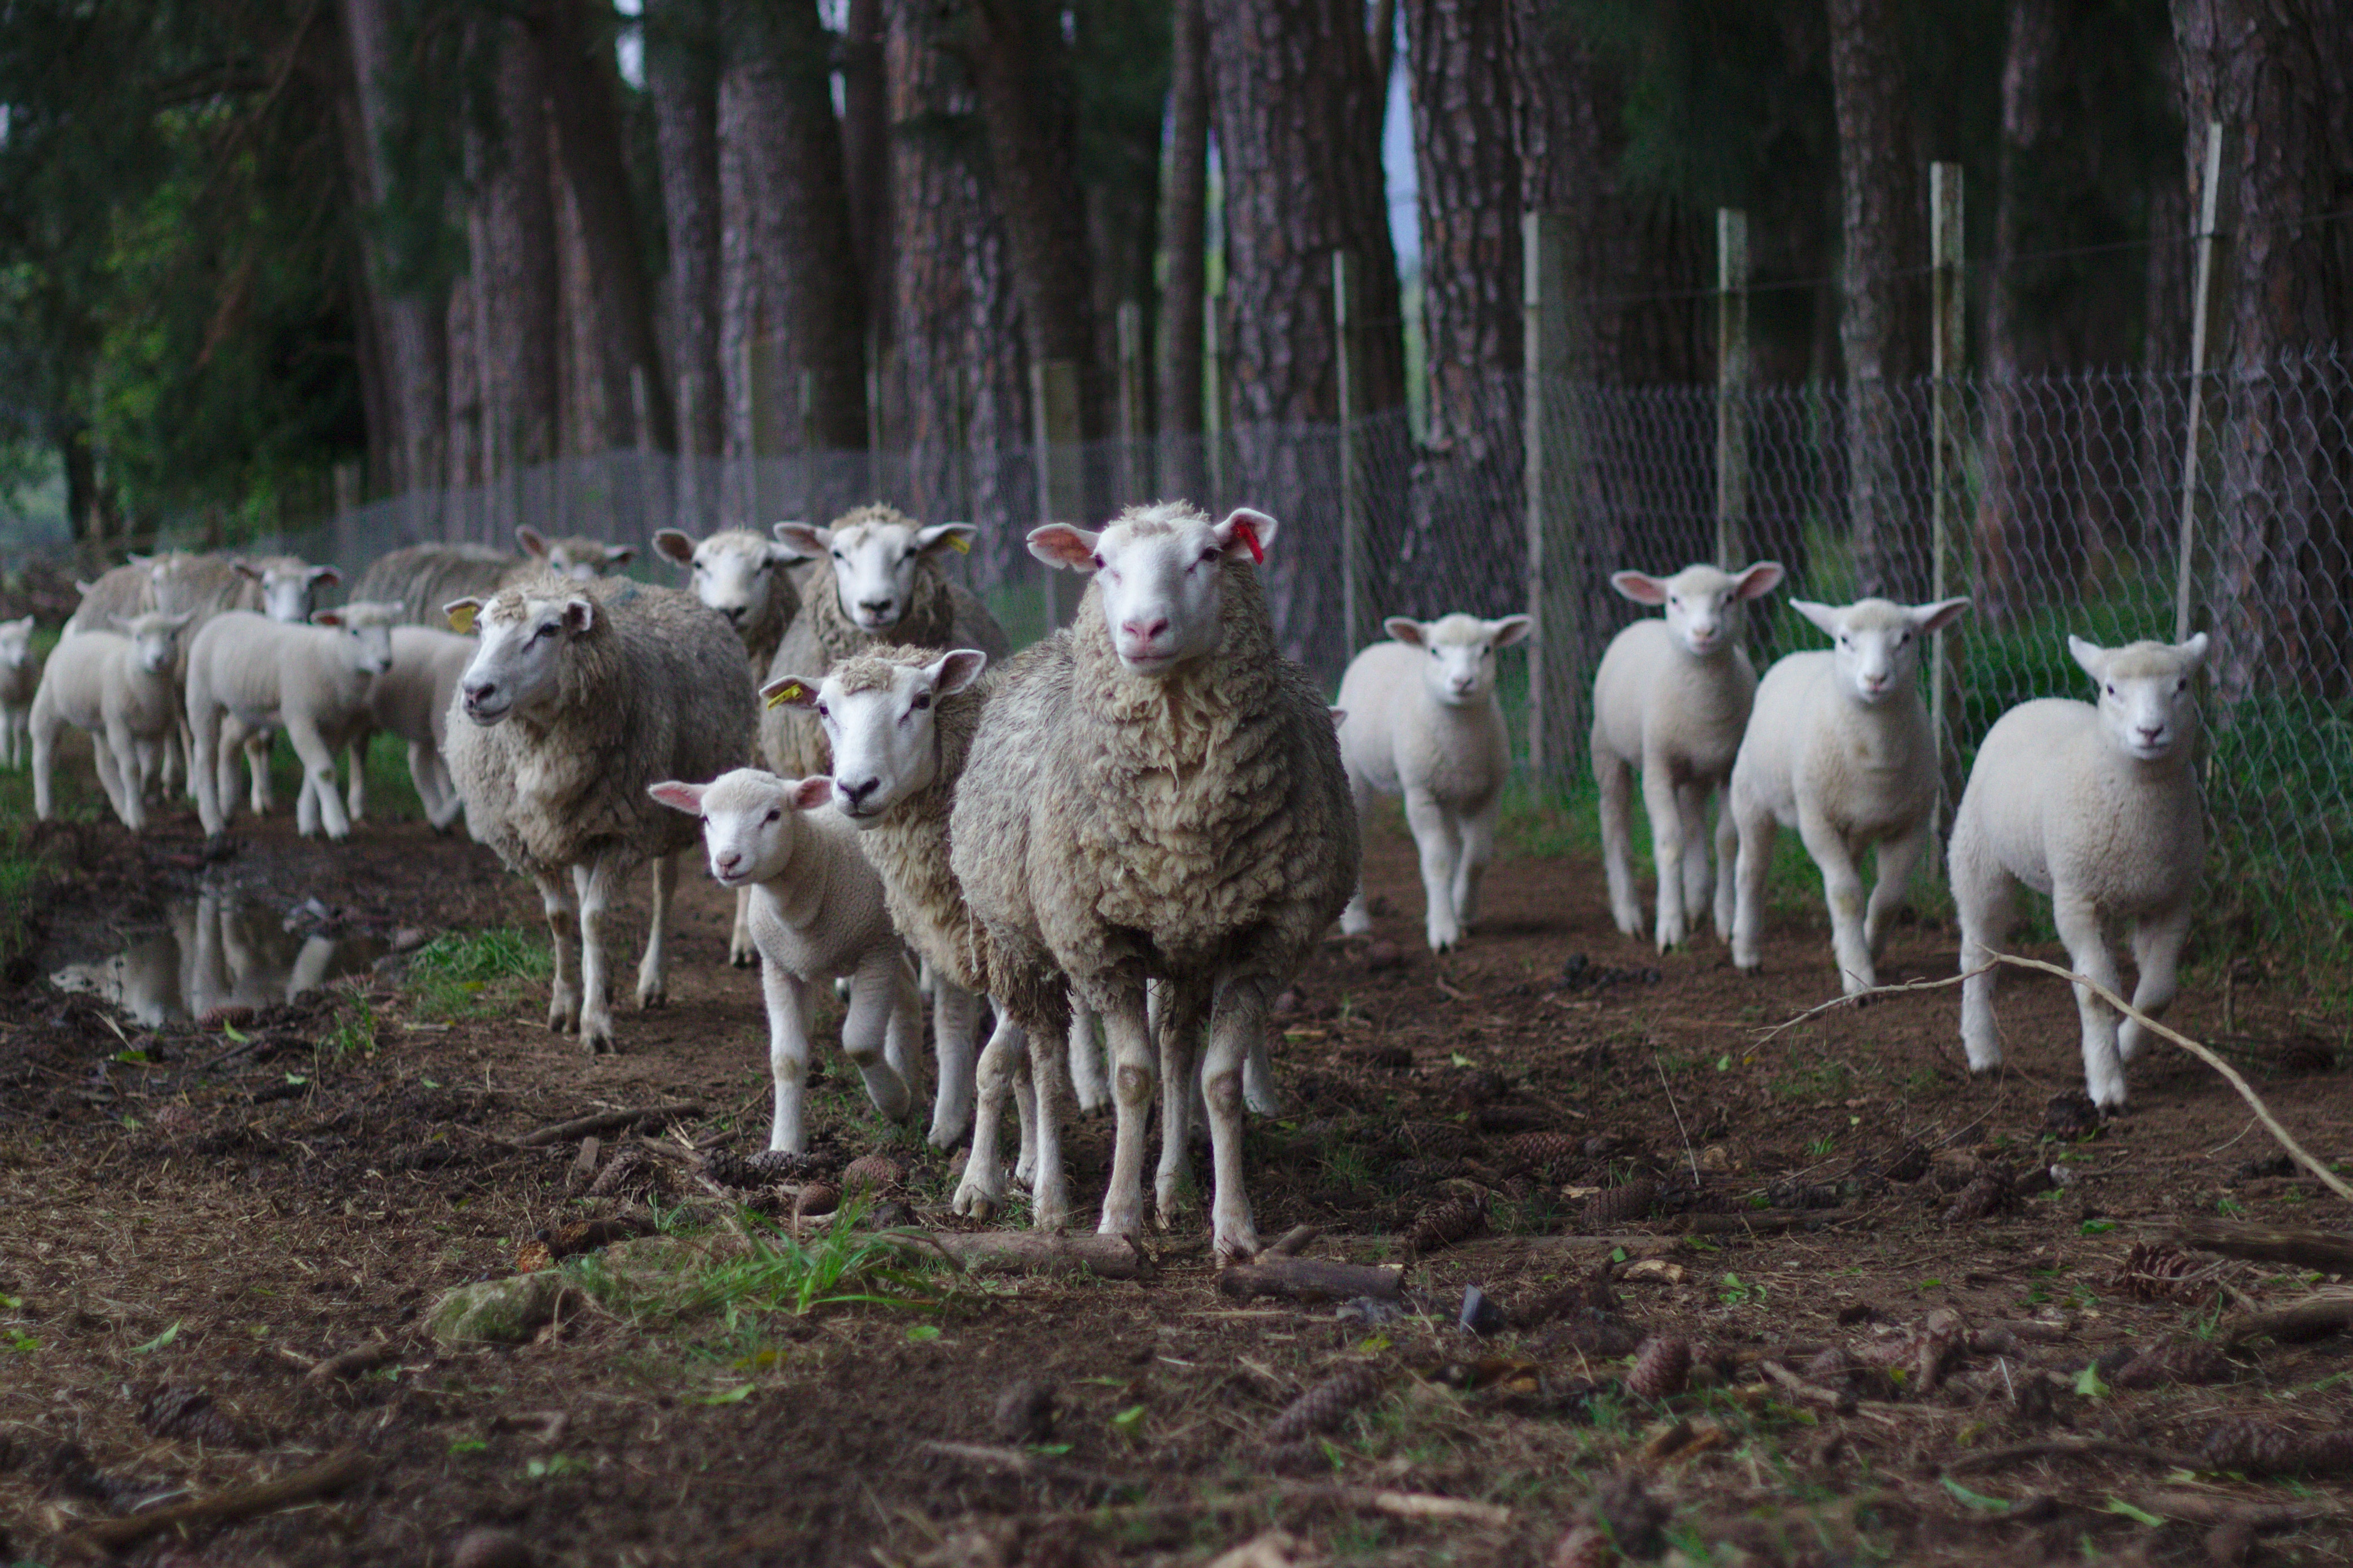 Healthy sheep and lambs